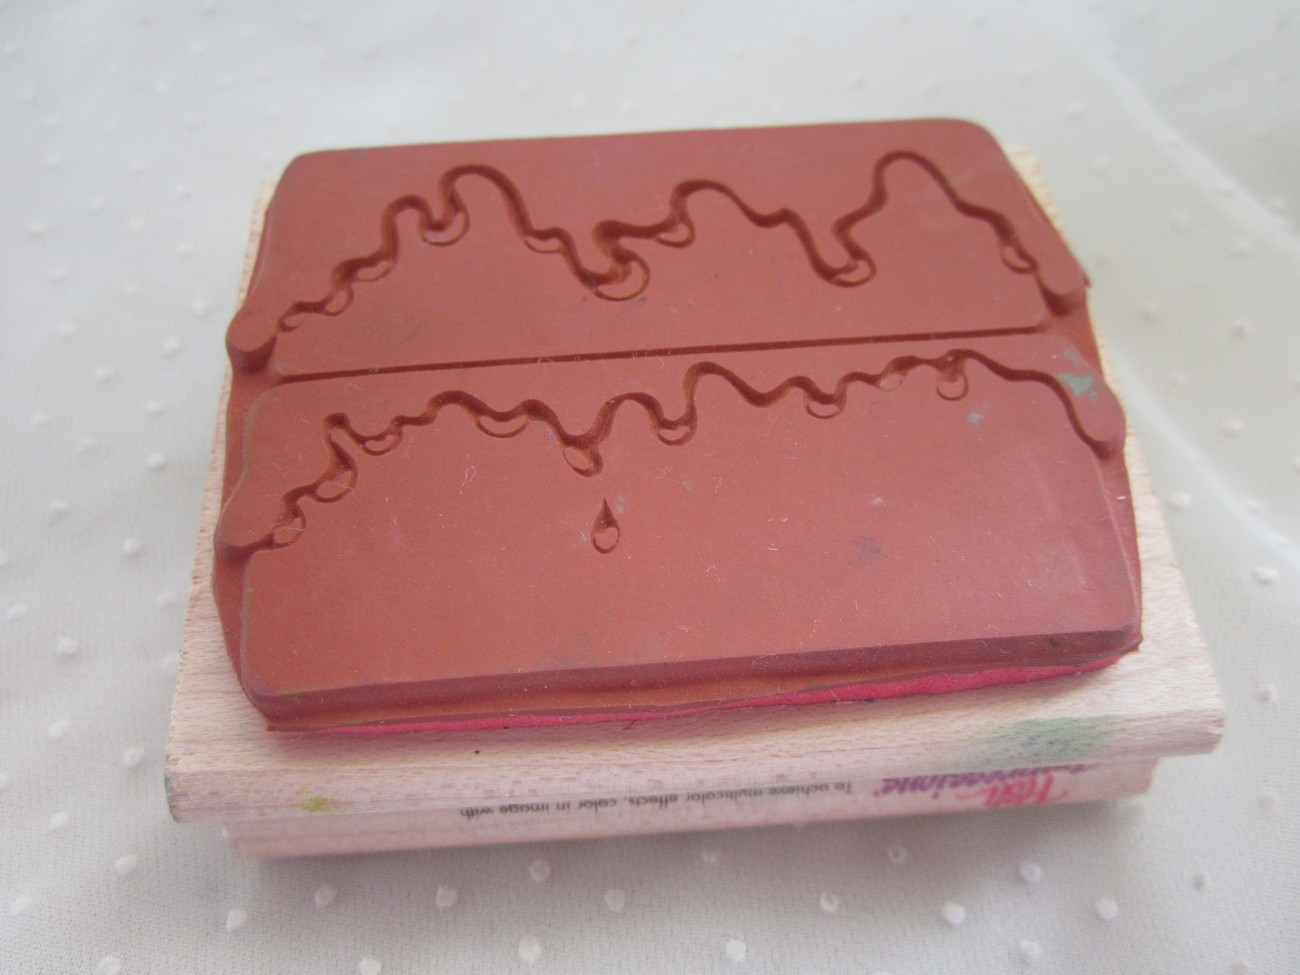 Posh Impressions Icing on the Cake Layer Cake Rubber Stamper Stamp